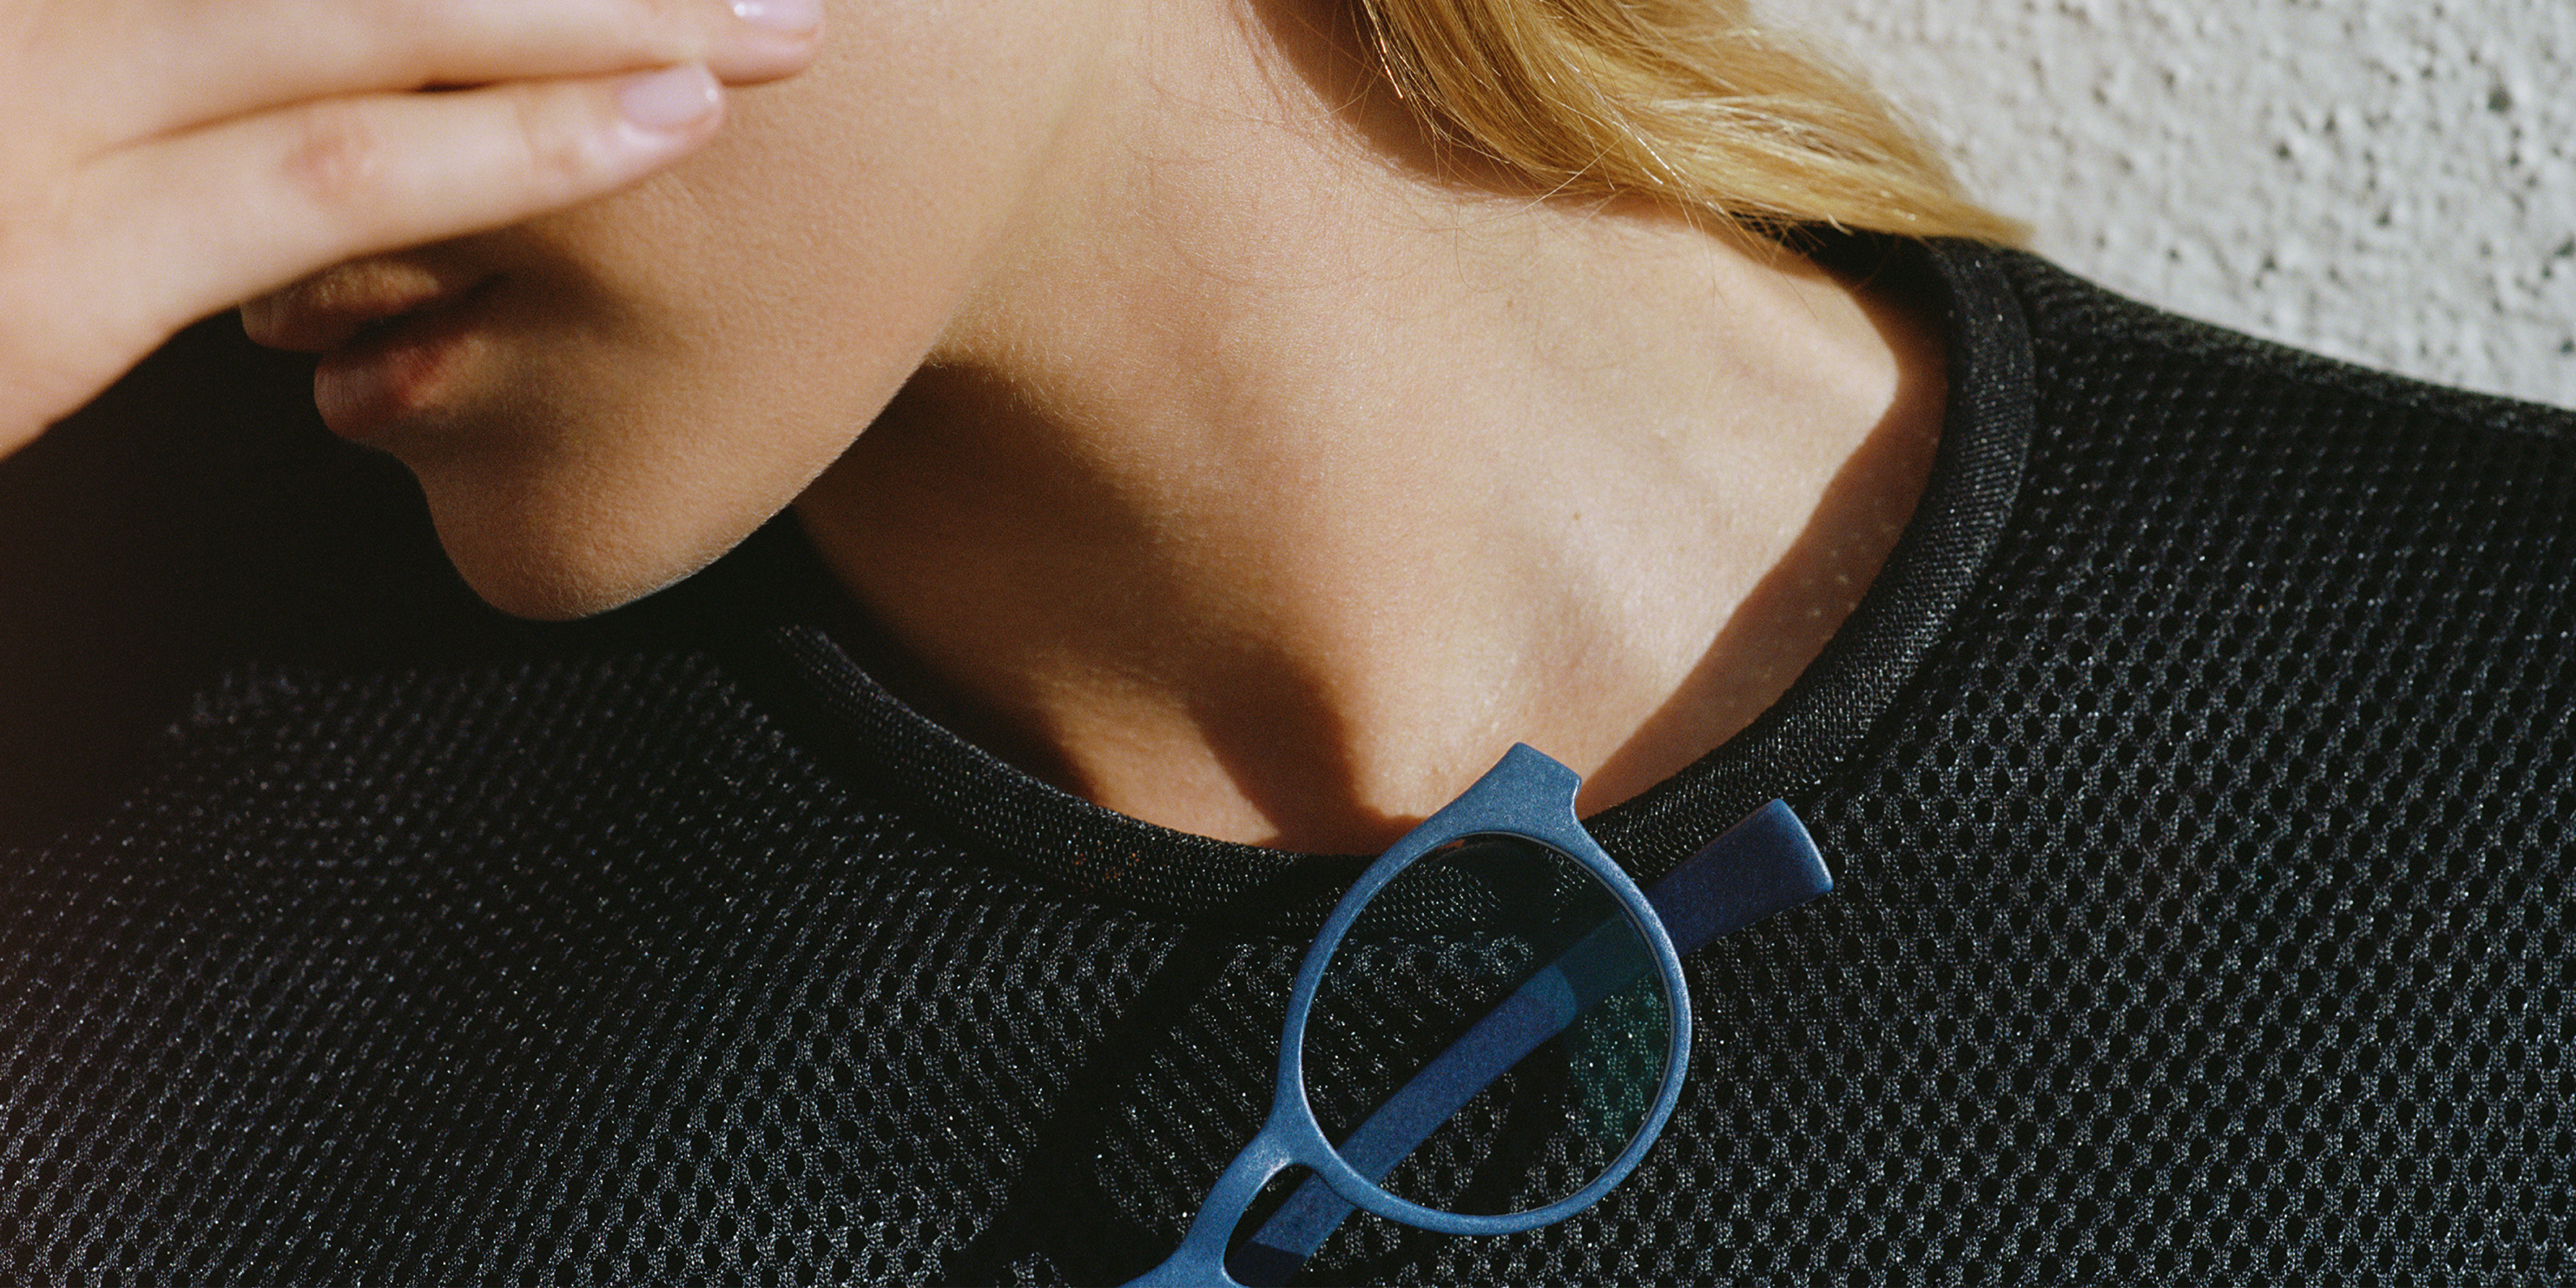 Sports meet fashion at the MYKITA MYLON 2015 campaign by Zoë Ghertner.